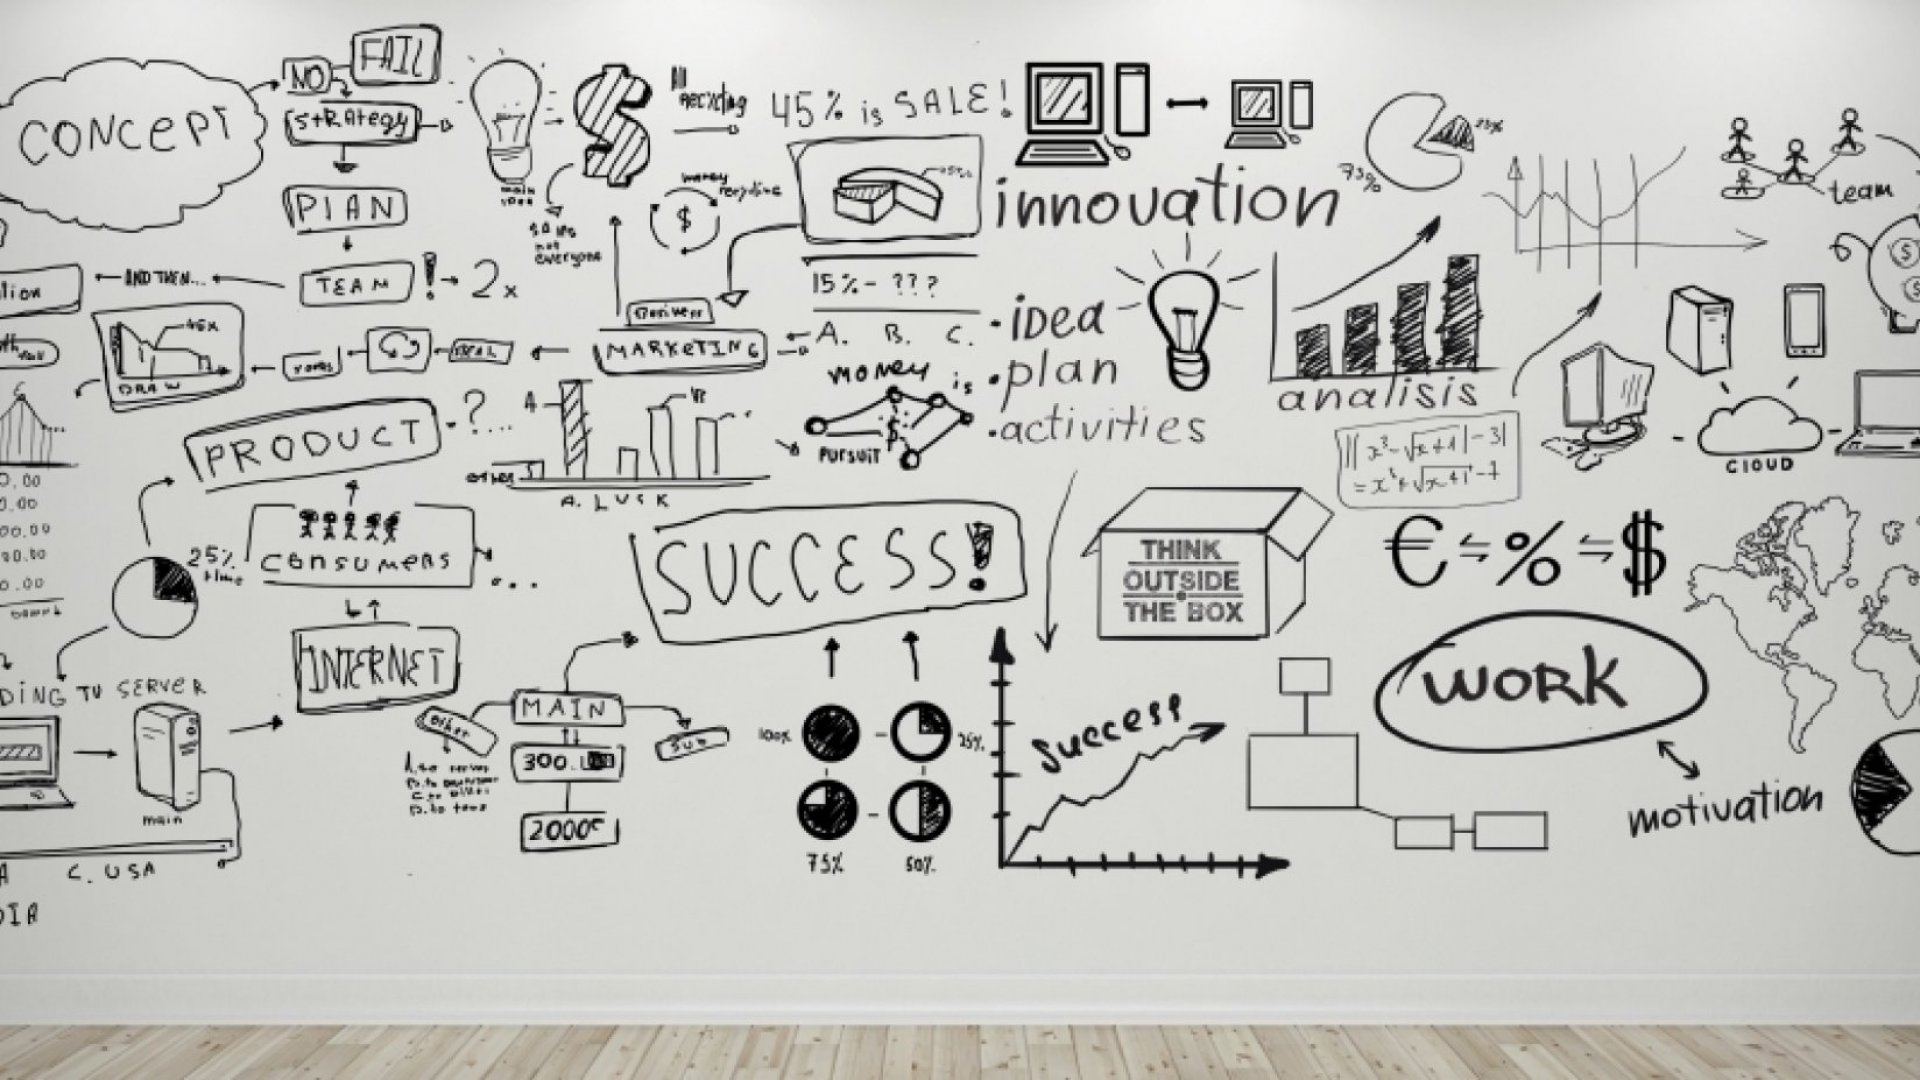 The Top 8 Dos and Don'ts for Startup Marketing